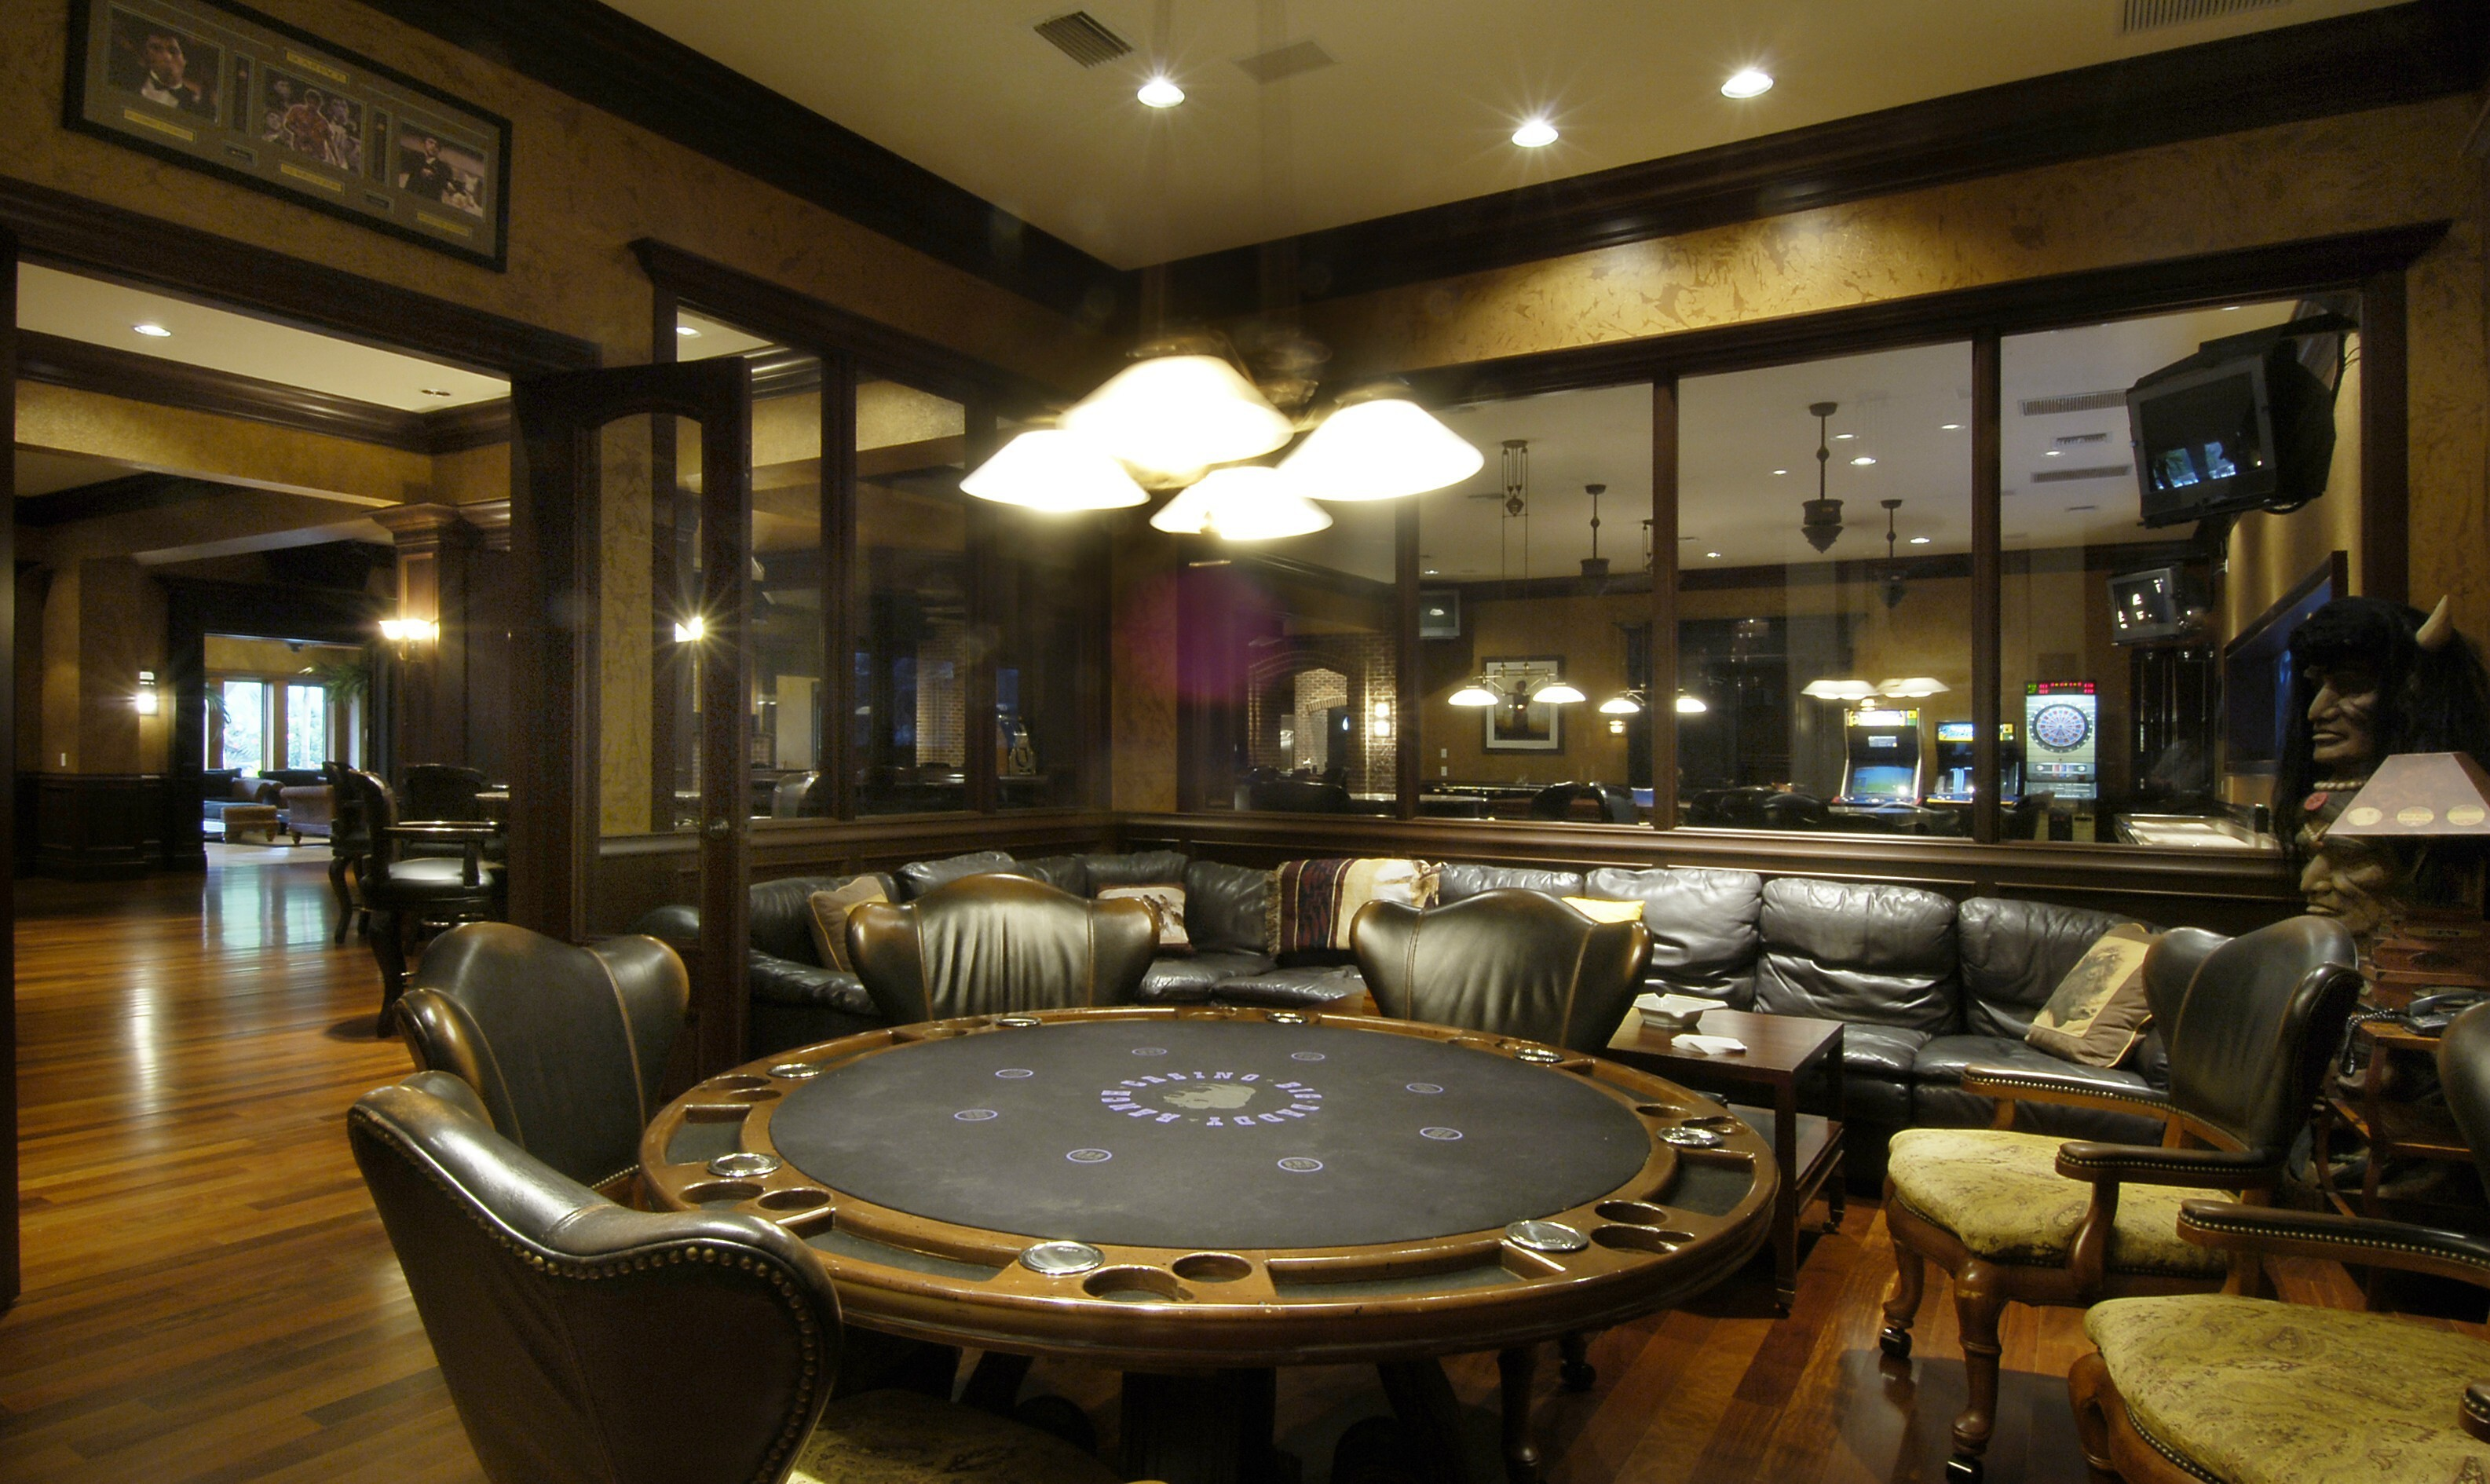 Poker room wallpaper